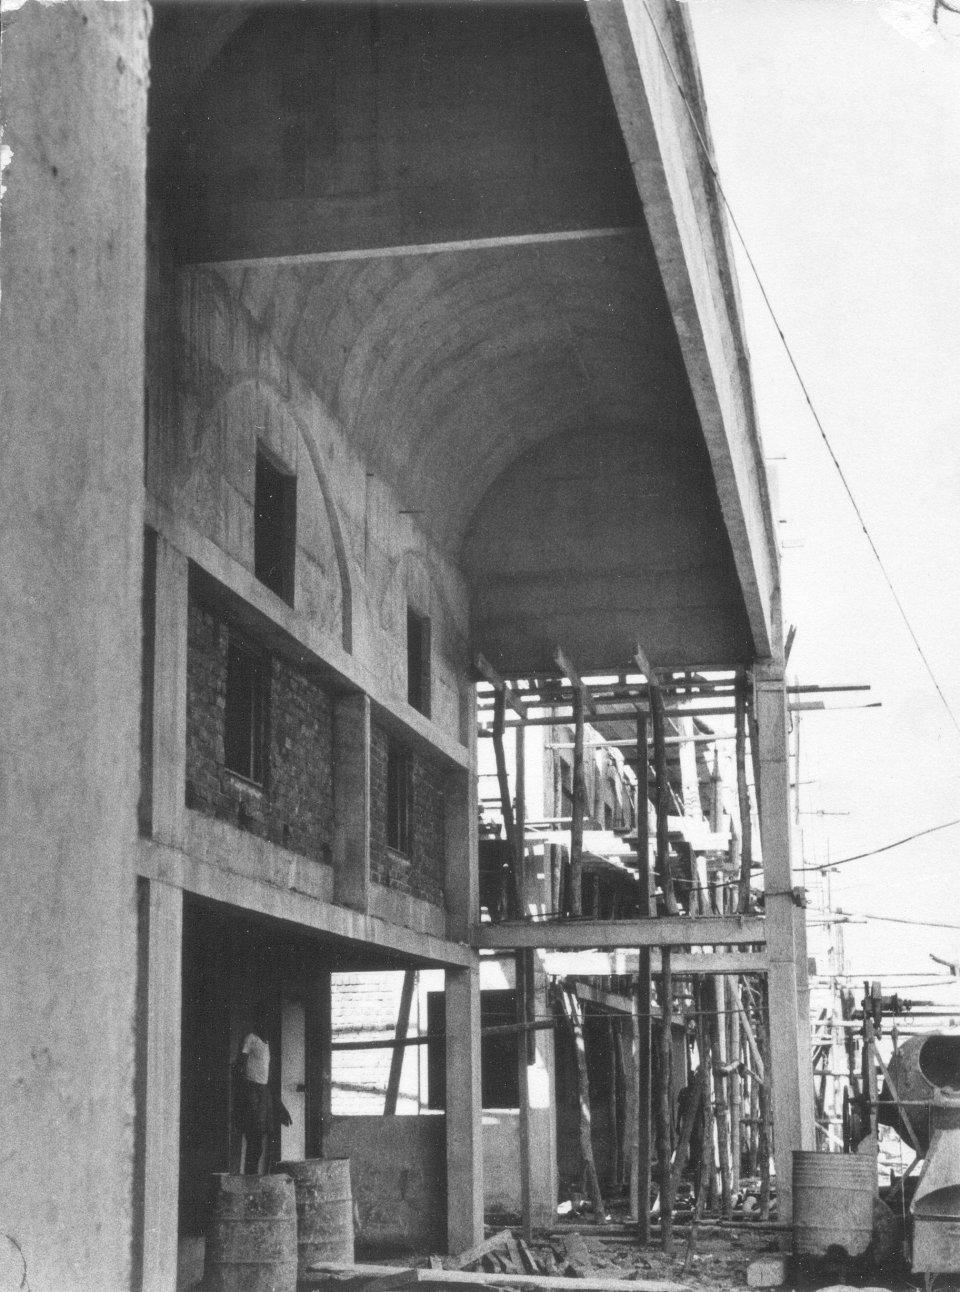 Exterior street and trading cells, MAFCO Wholesale Market under construction, 1976